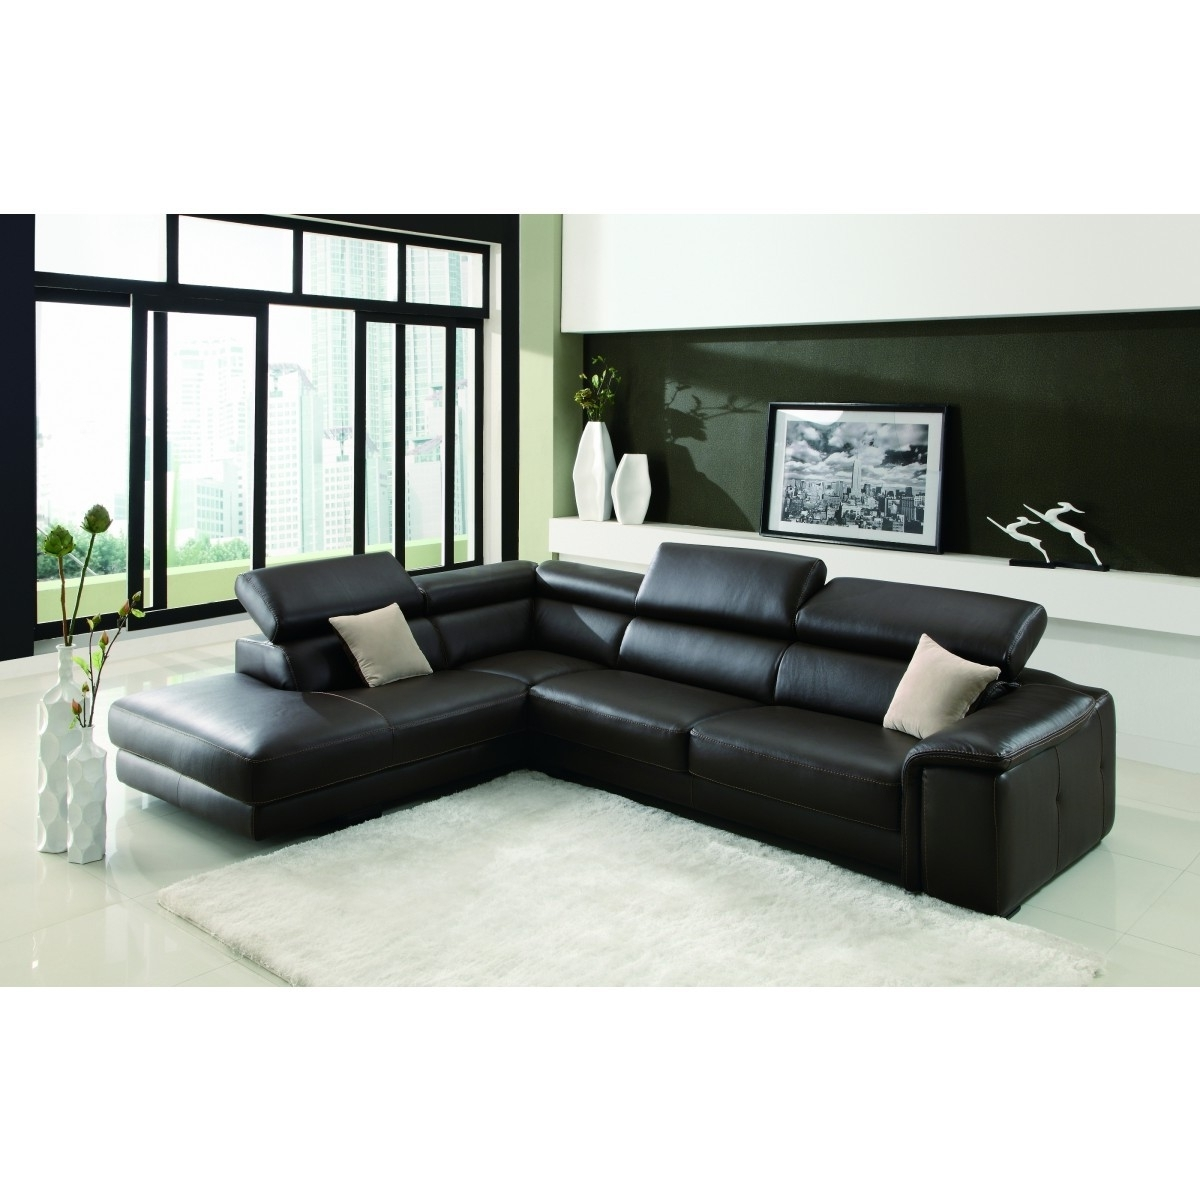 Most Current Nashua Nh Sectional Sofas Within Deon Sectional Sofacreative Furniture – Italmoda Furniture Store (View 6 of 15)